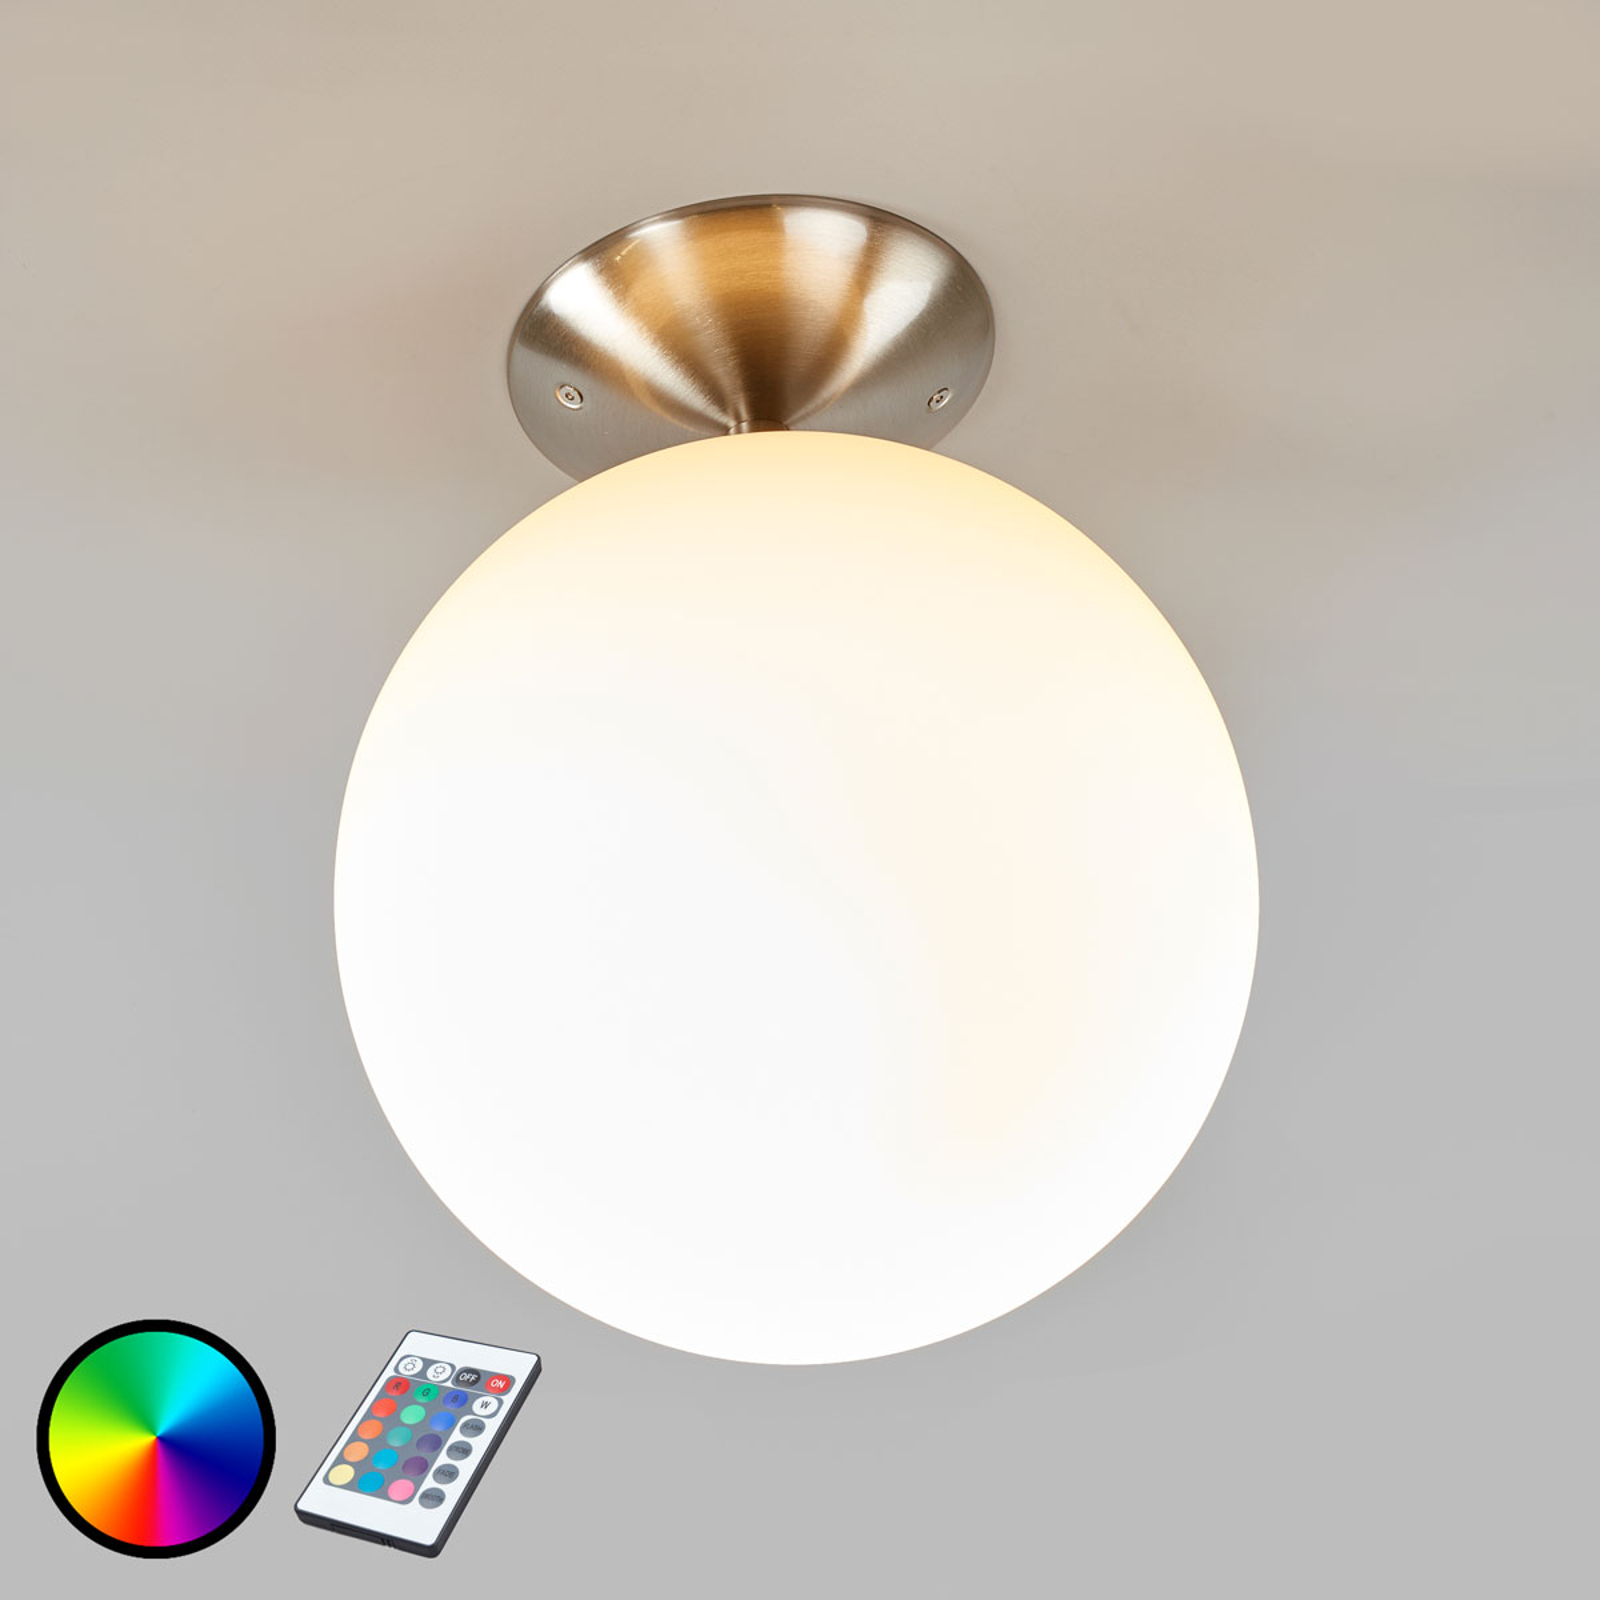 Abstands-Deckenlampe Rondo-C LED RGBW